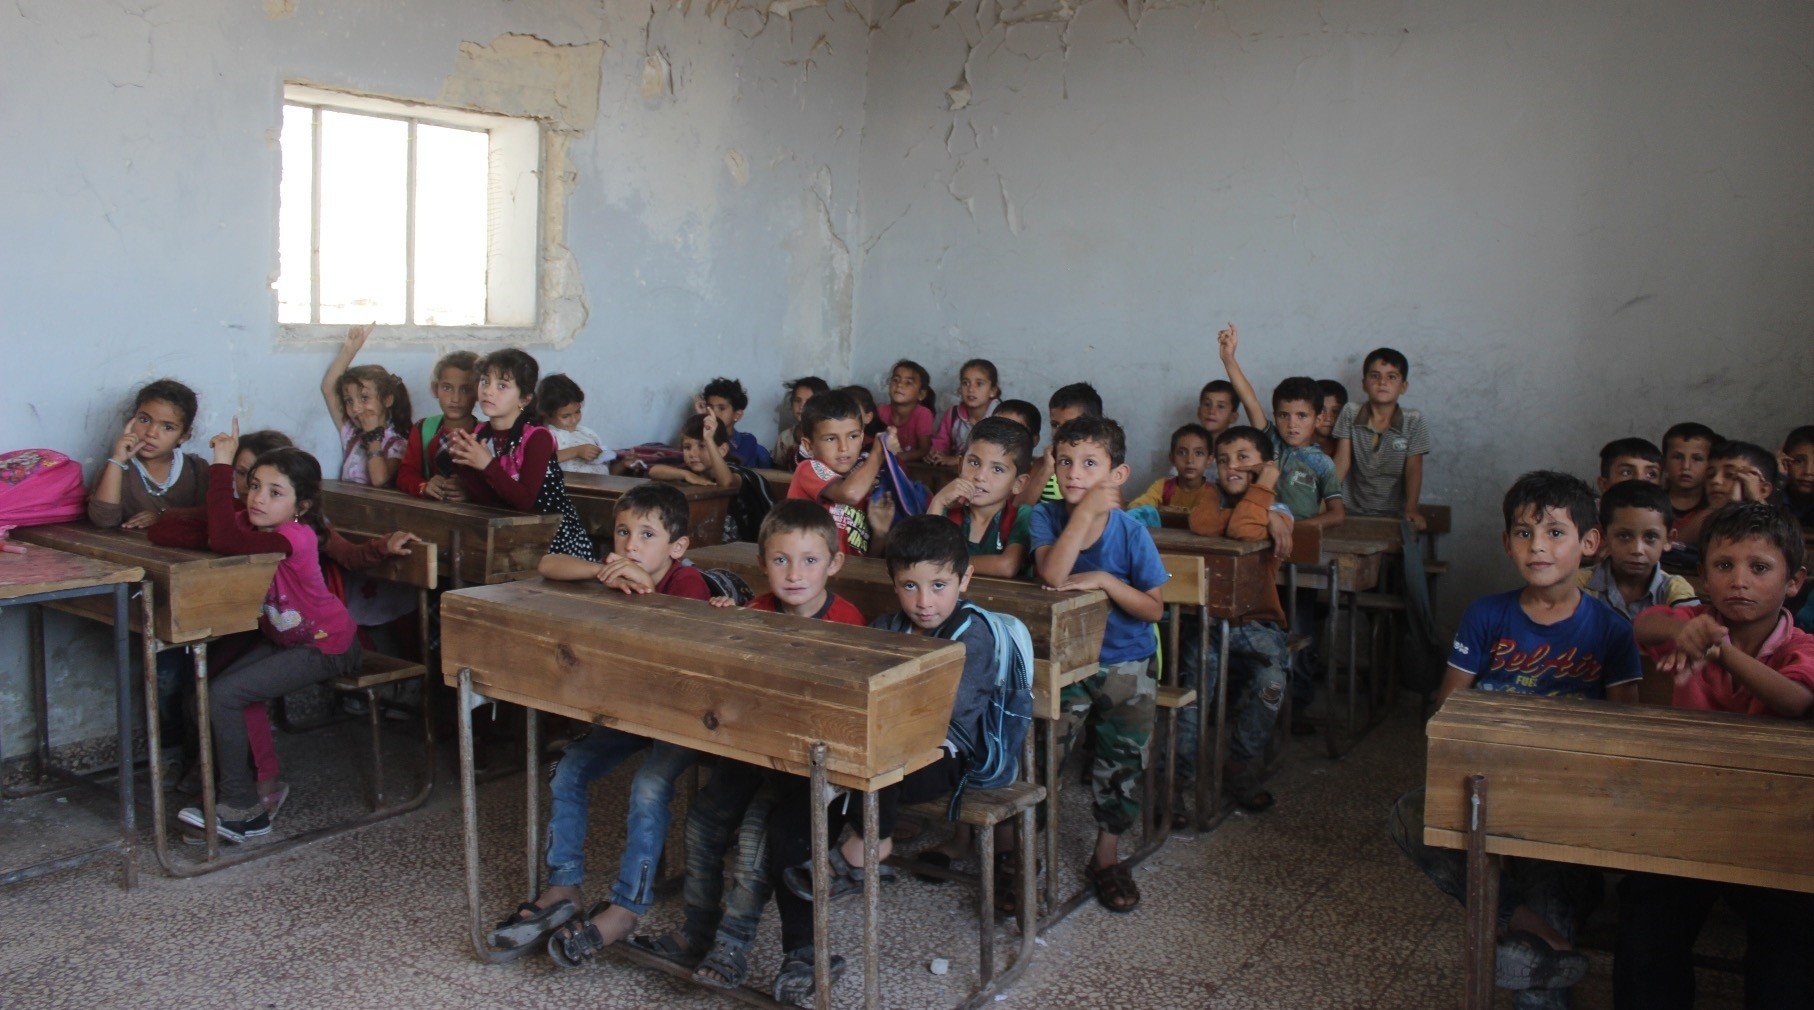 Students in a classroom in Kafr village of Jisr al-Shughour district in the Idlib province of Syria, yesterday.